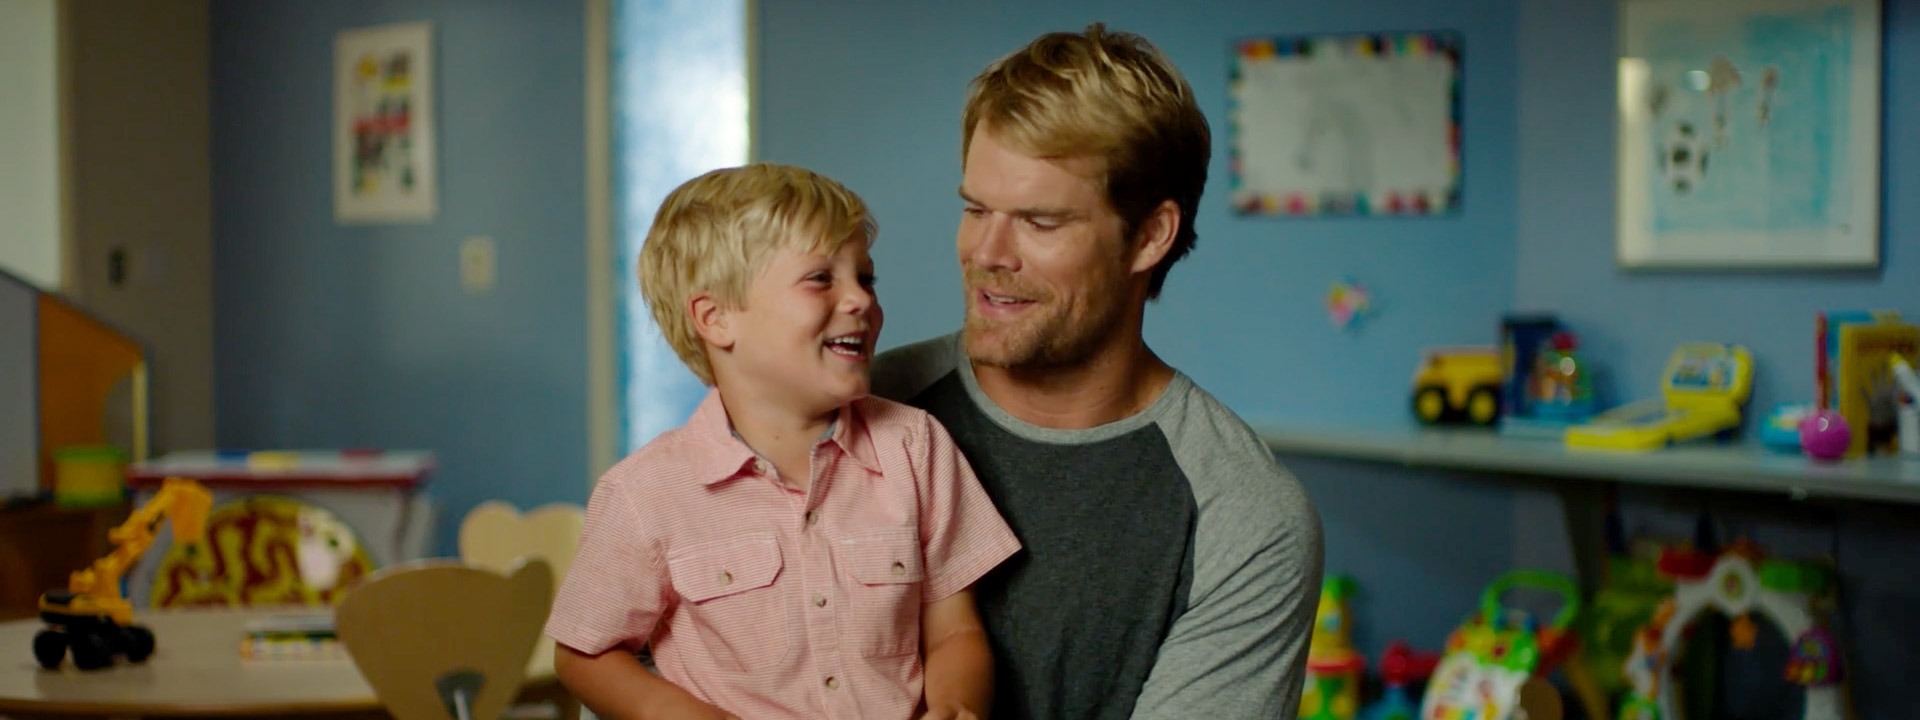 Greg Olsen helps families of children with congenital heart disease through The HEARTest Yard.